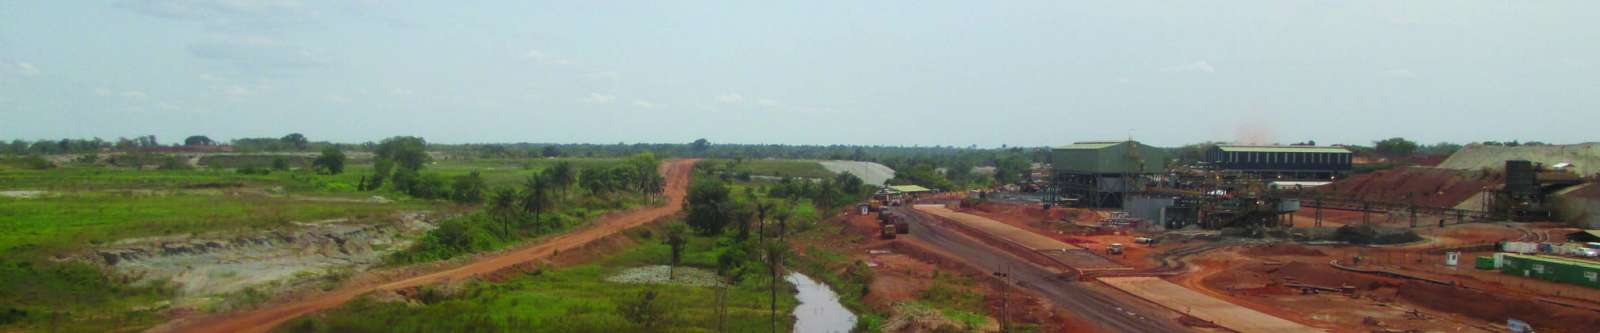 Water Managment in mining - Transport Infrastructure